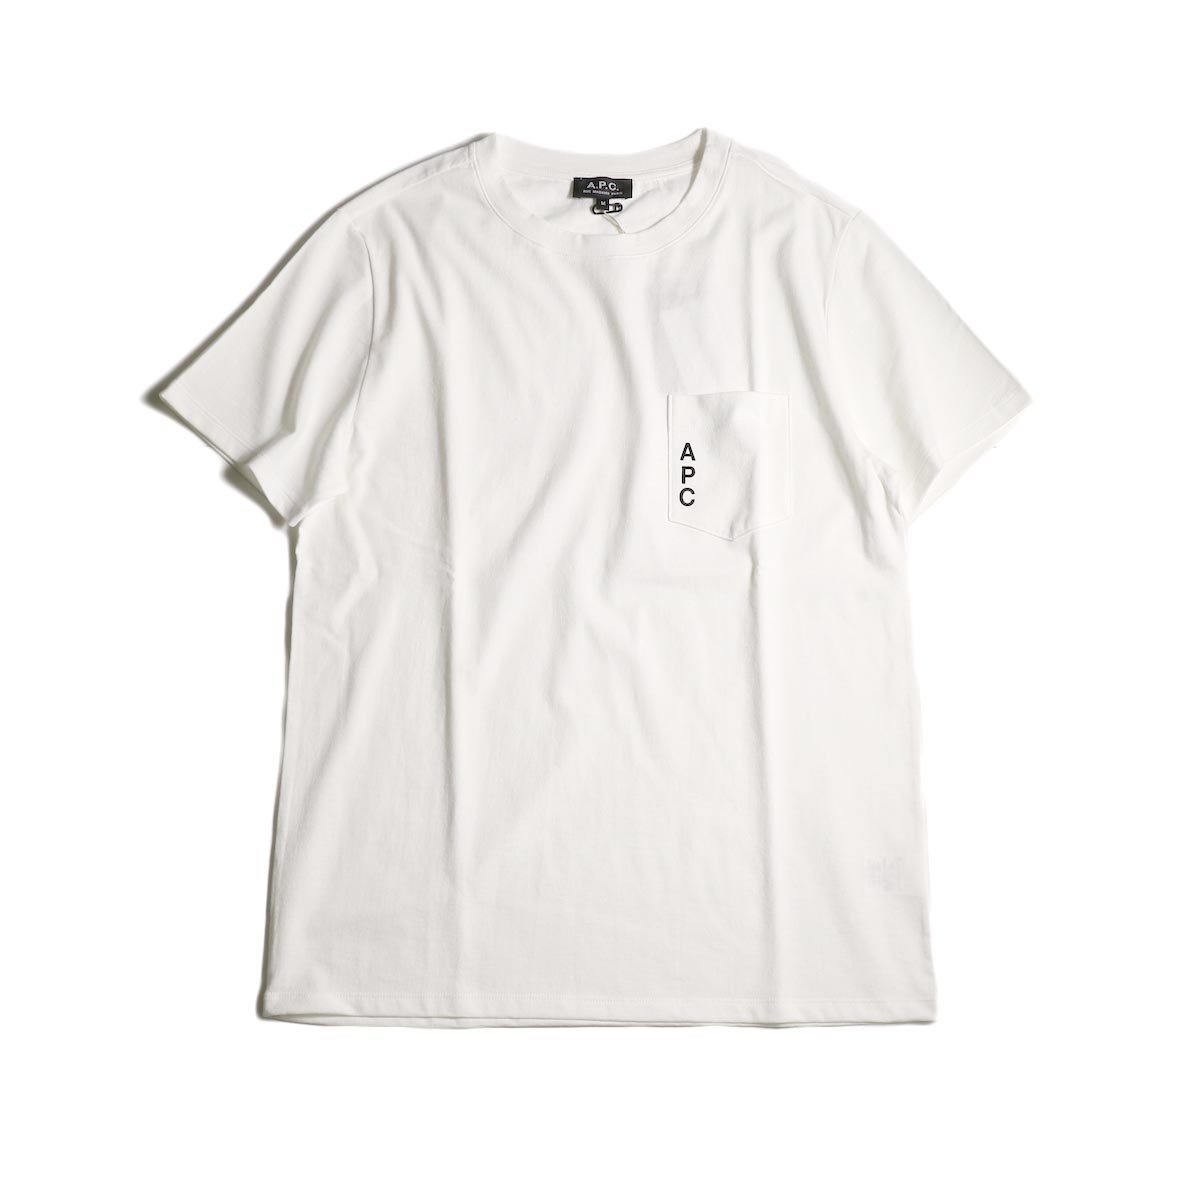 A.P.C. / Crew Neck Pocket Tee -White